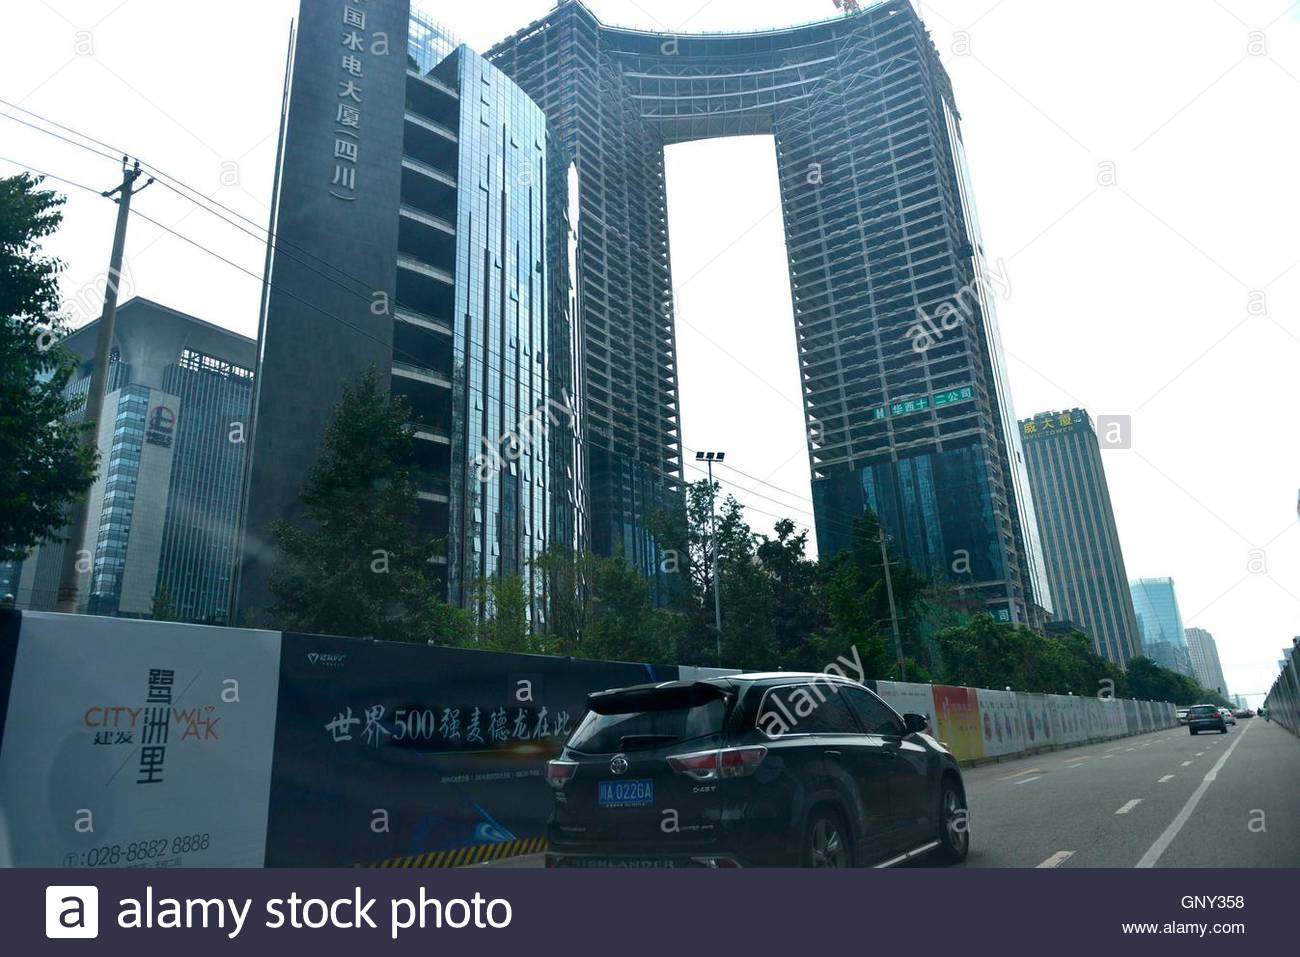 Netizens found a completely flat building in Singapore 4